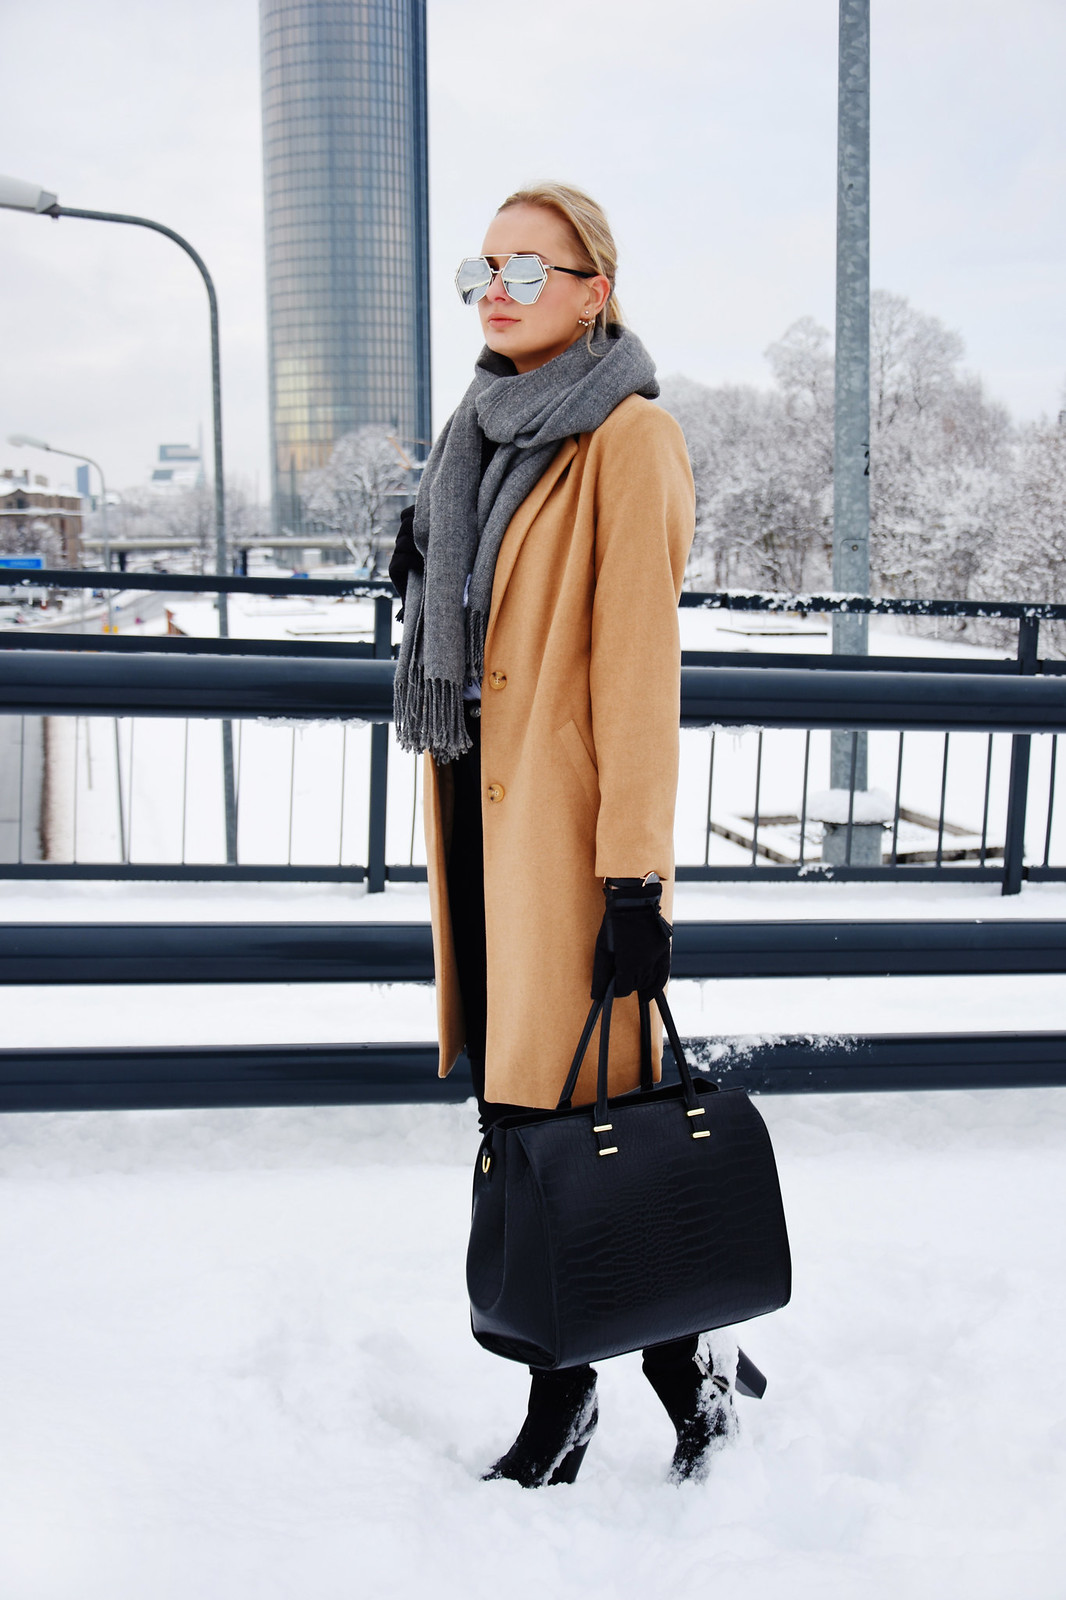 Finding the perfect winter coat